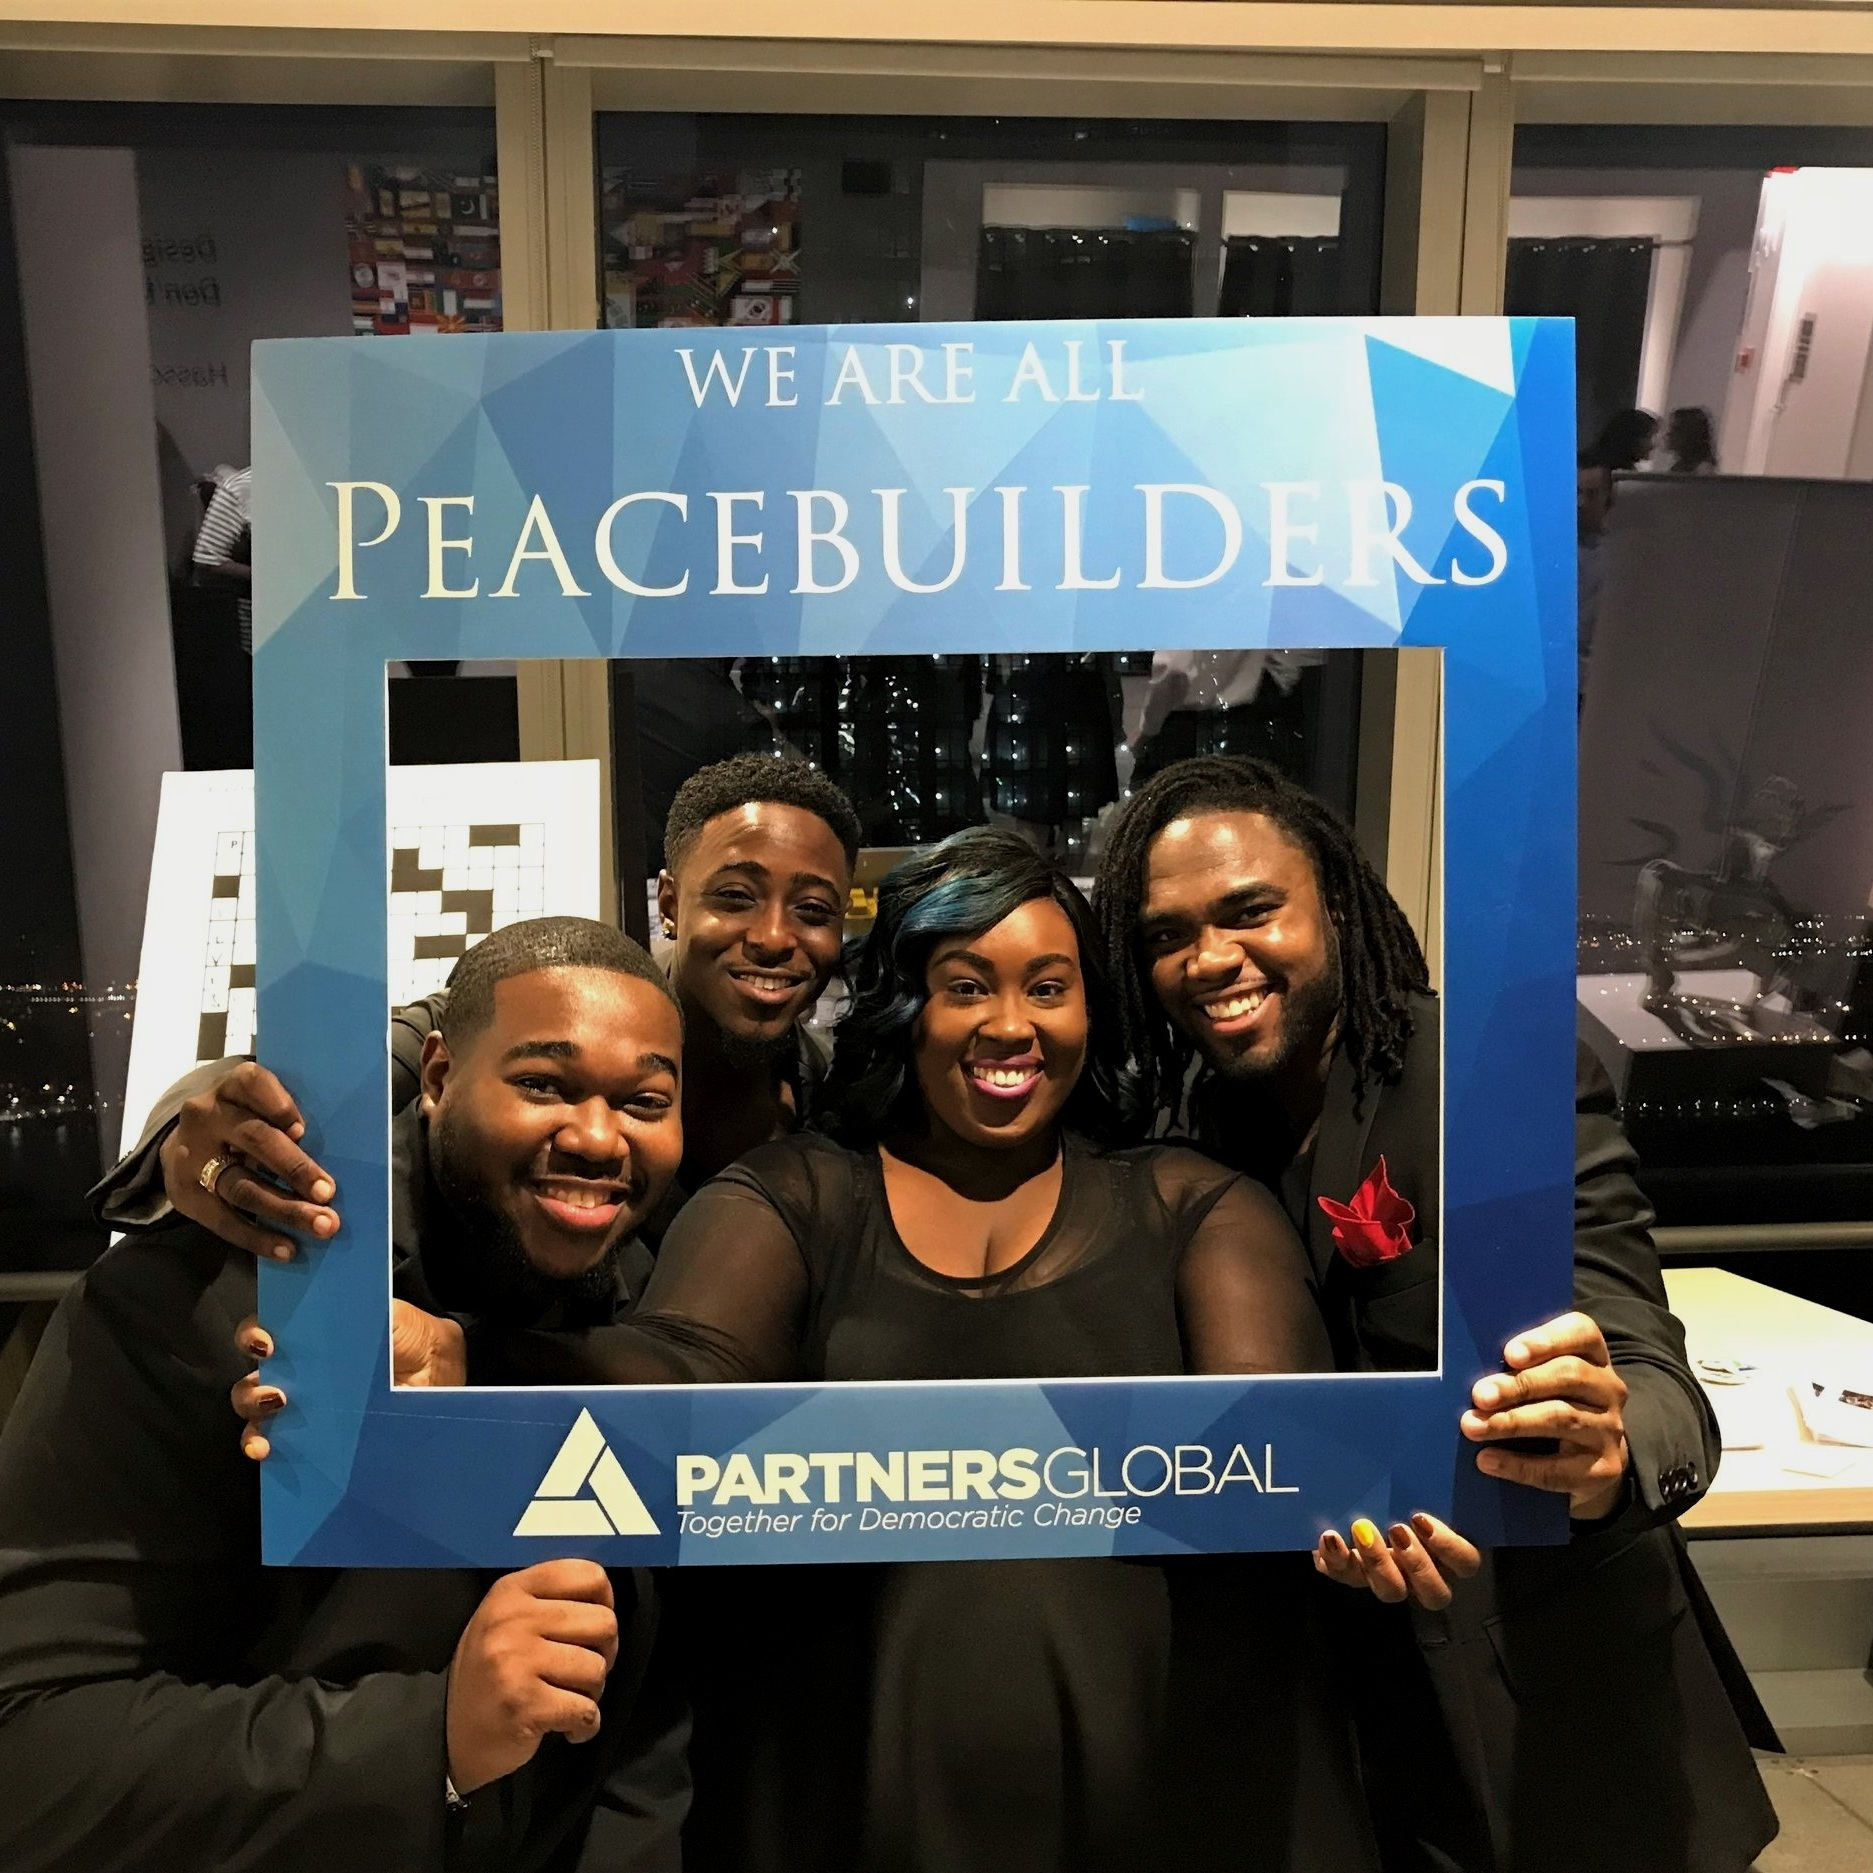 Peacebuilders Celebrate the Newest Word in the English Language - By the Alliance for Peacebuilding